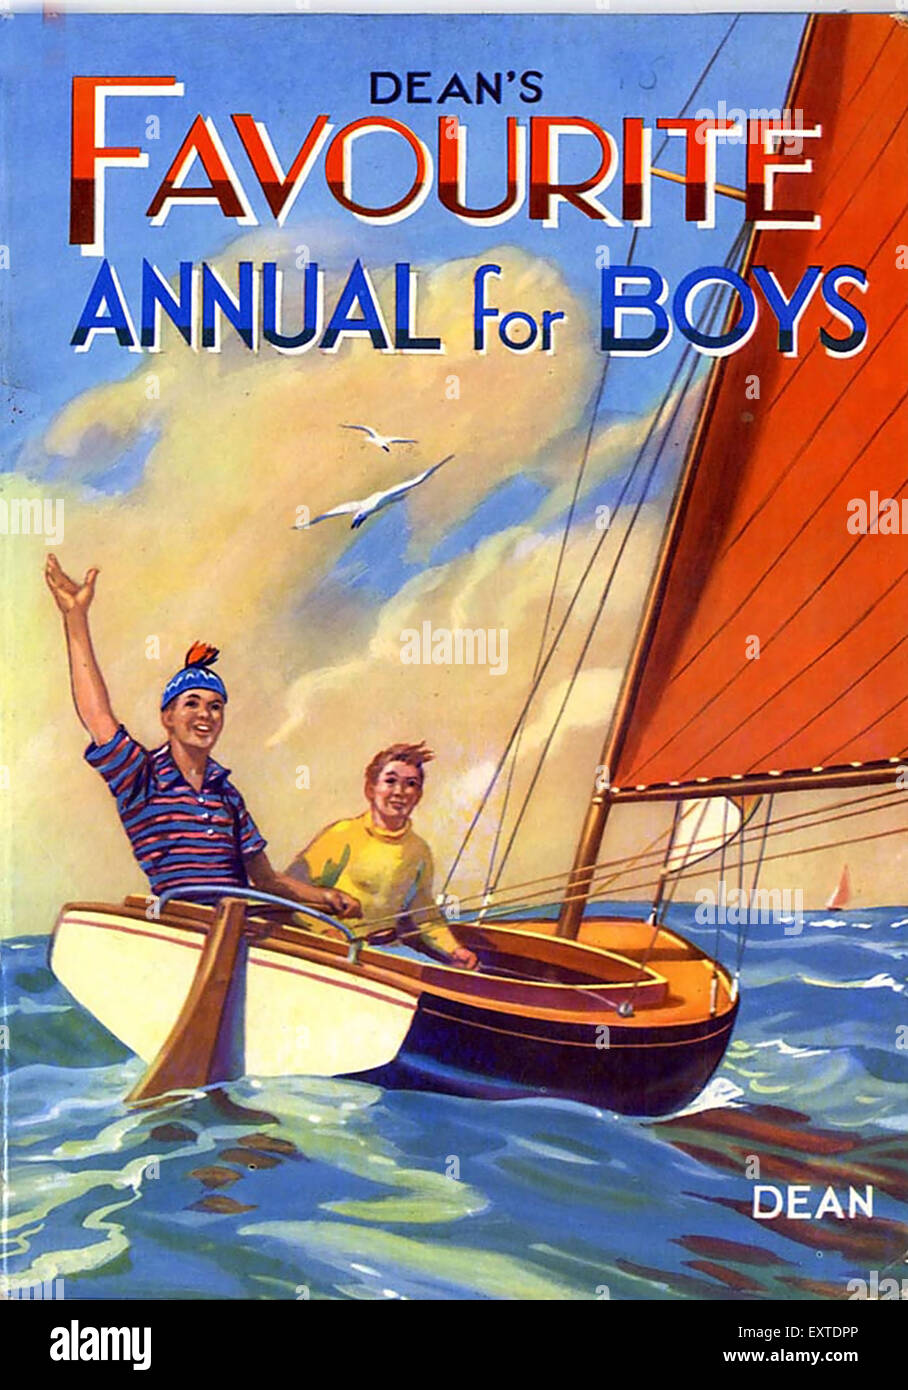 1950s UK Favourite Annual For Boys Comic/ Annual Cover - Stock Image